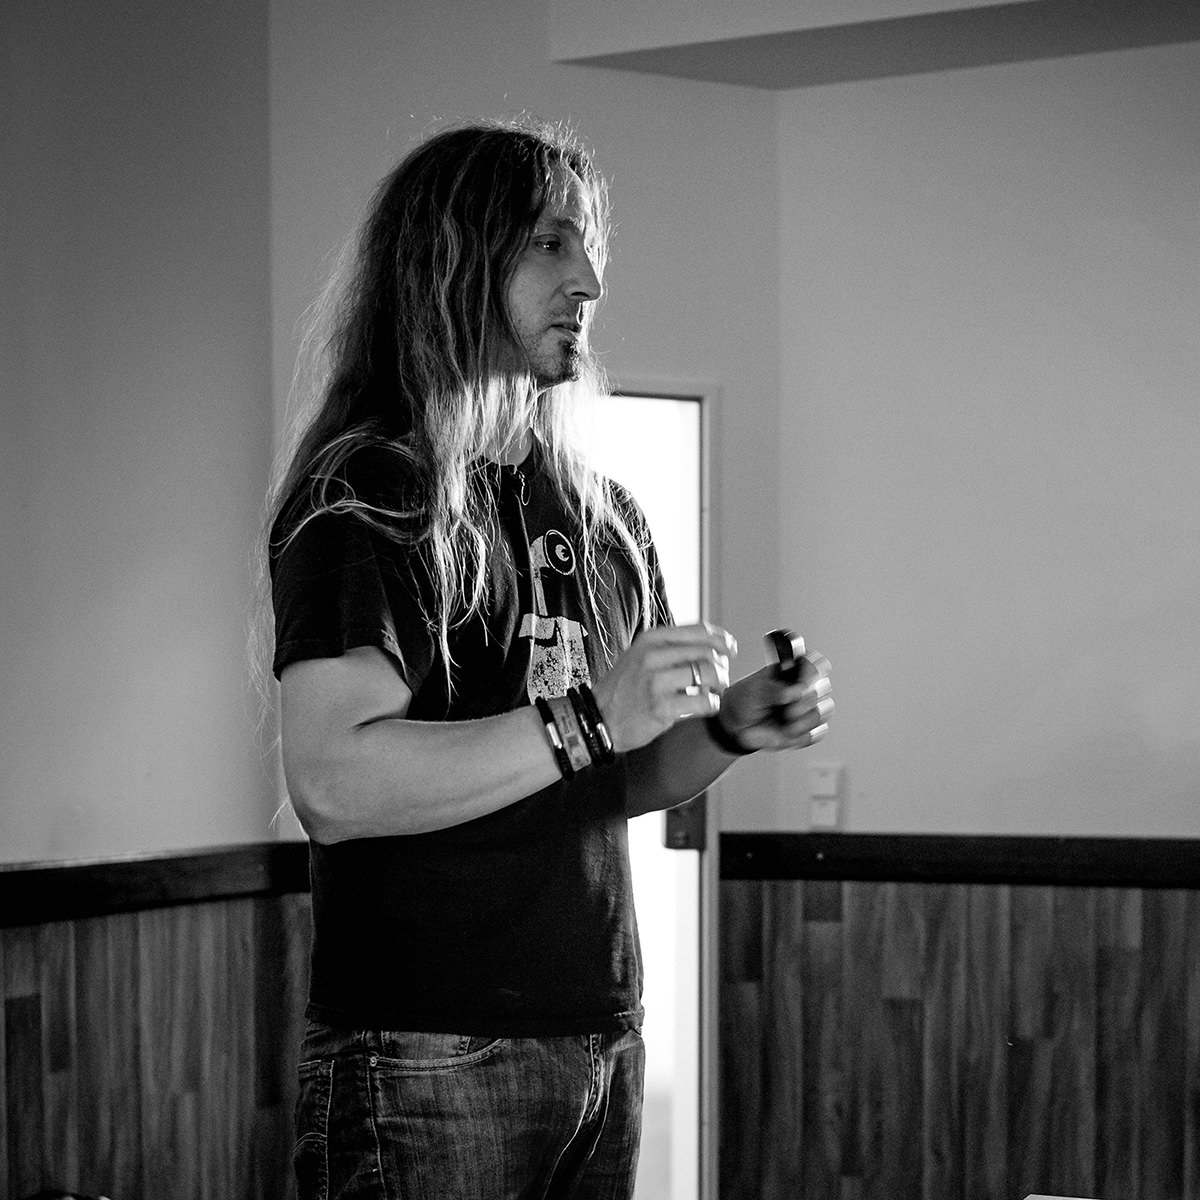 Photo showing me, Marc Thiele, speaking at Webworker Ruhr Meetup